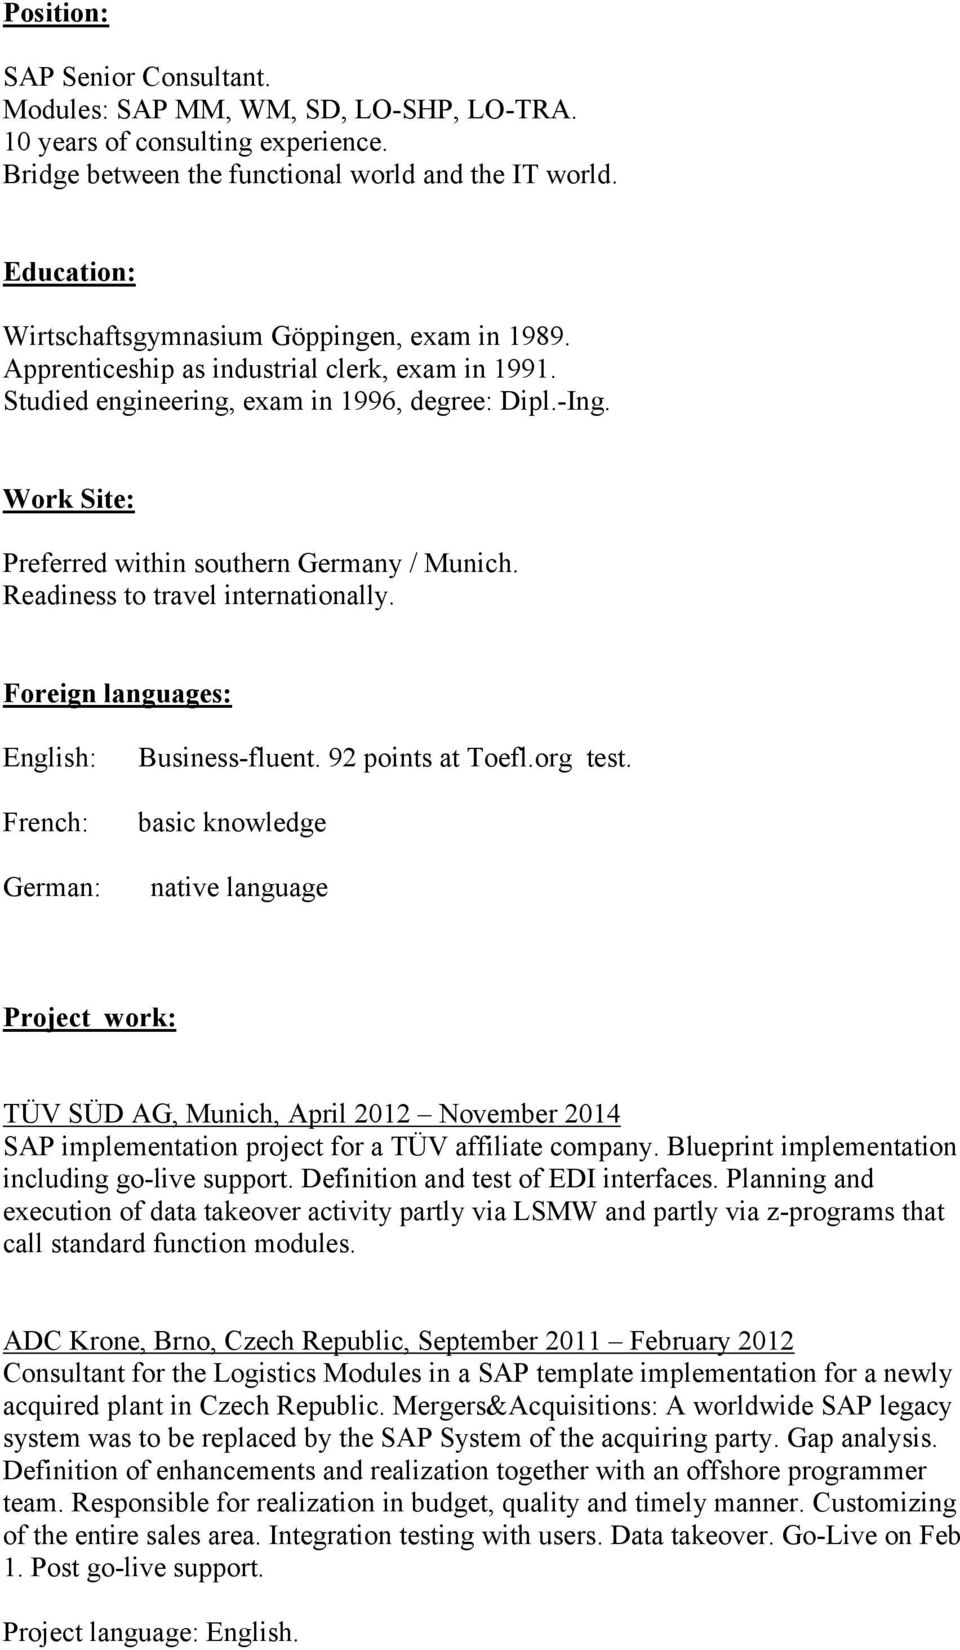 Work Site: Preferred within southern Germany / Munich. Readiness to travel internationally. Foreign languages: English: French: German: Business-fluent. 92 points at Toefl.org test.